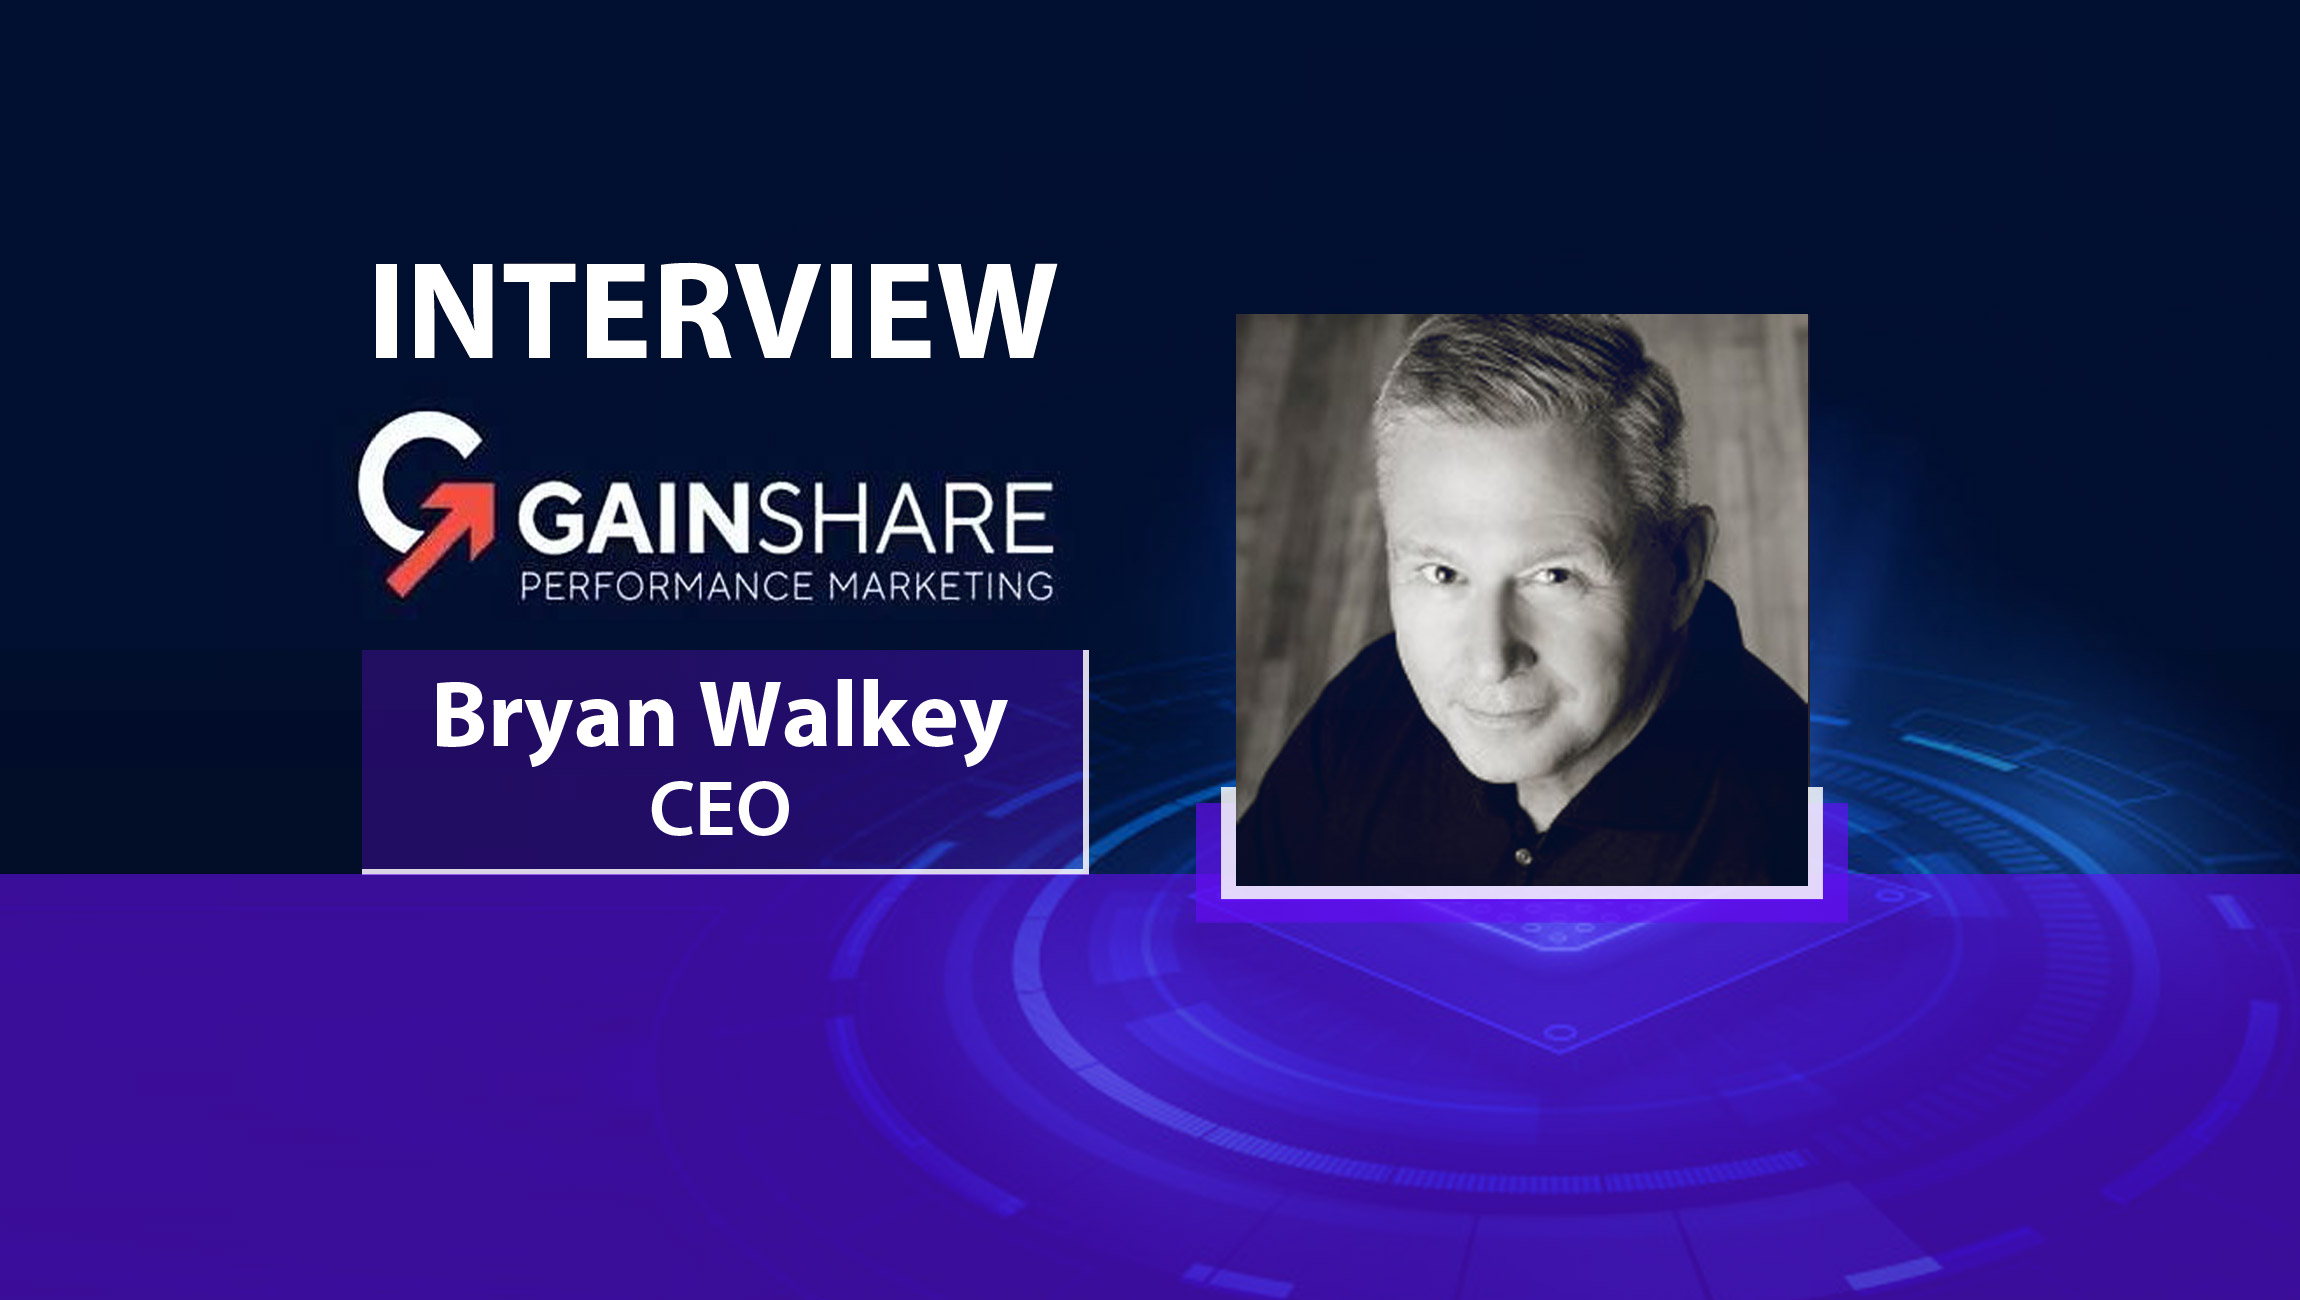 MarTech Series Interview with Bryan Walkey, CEO of GainShare